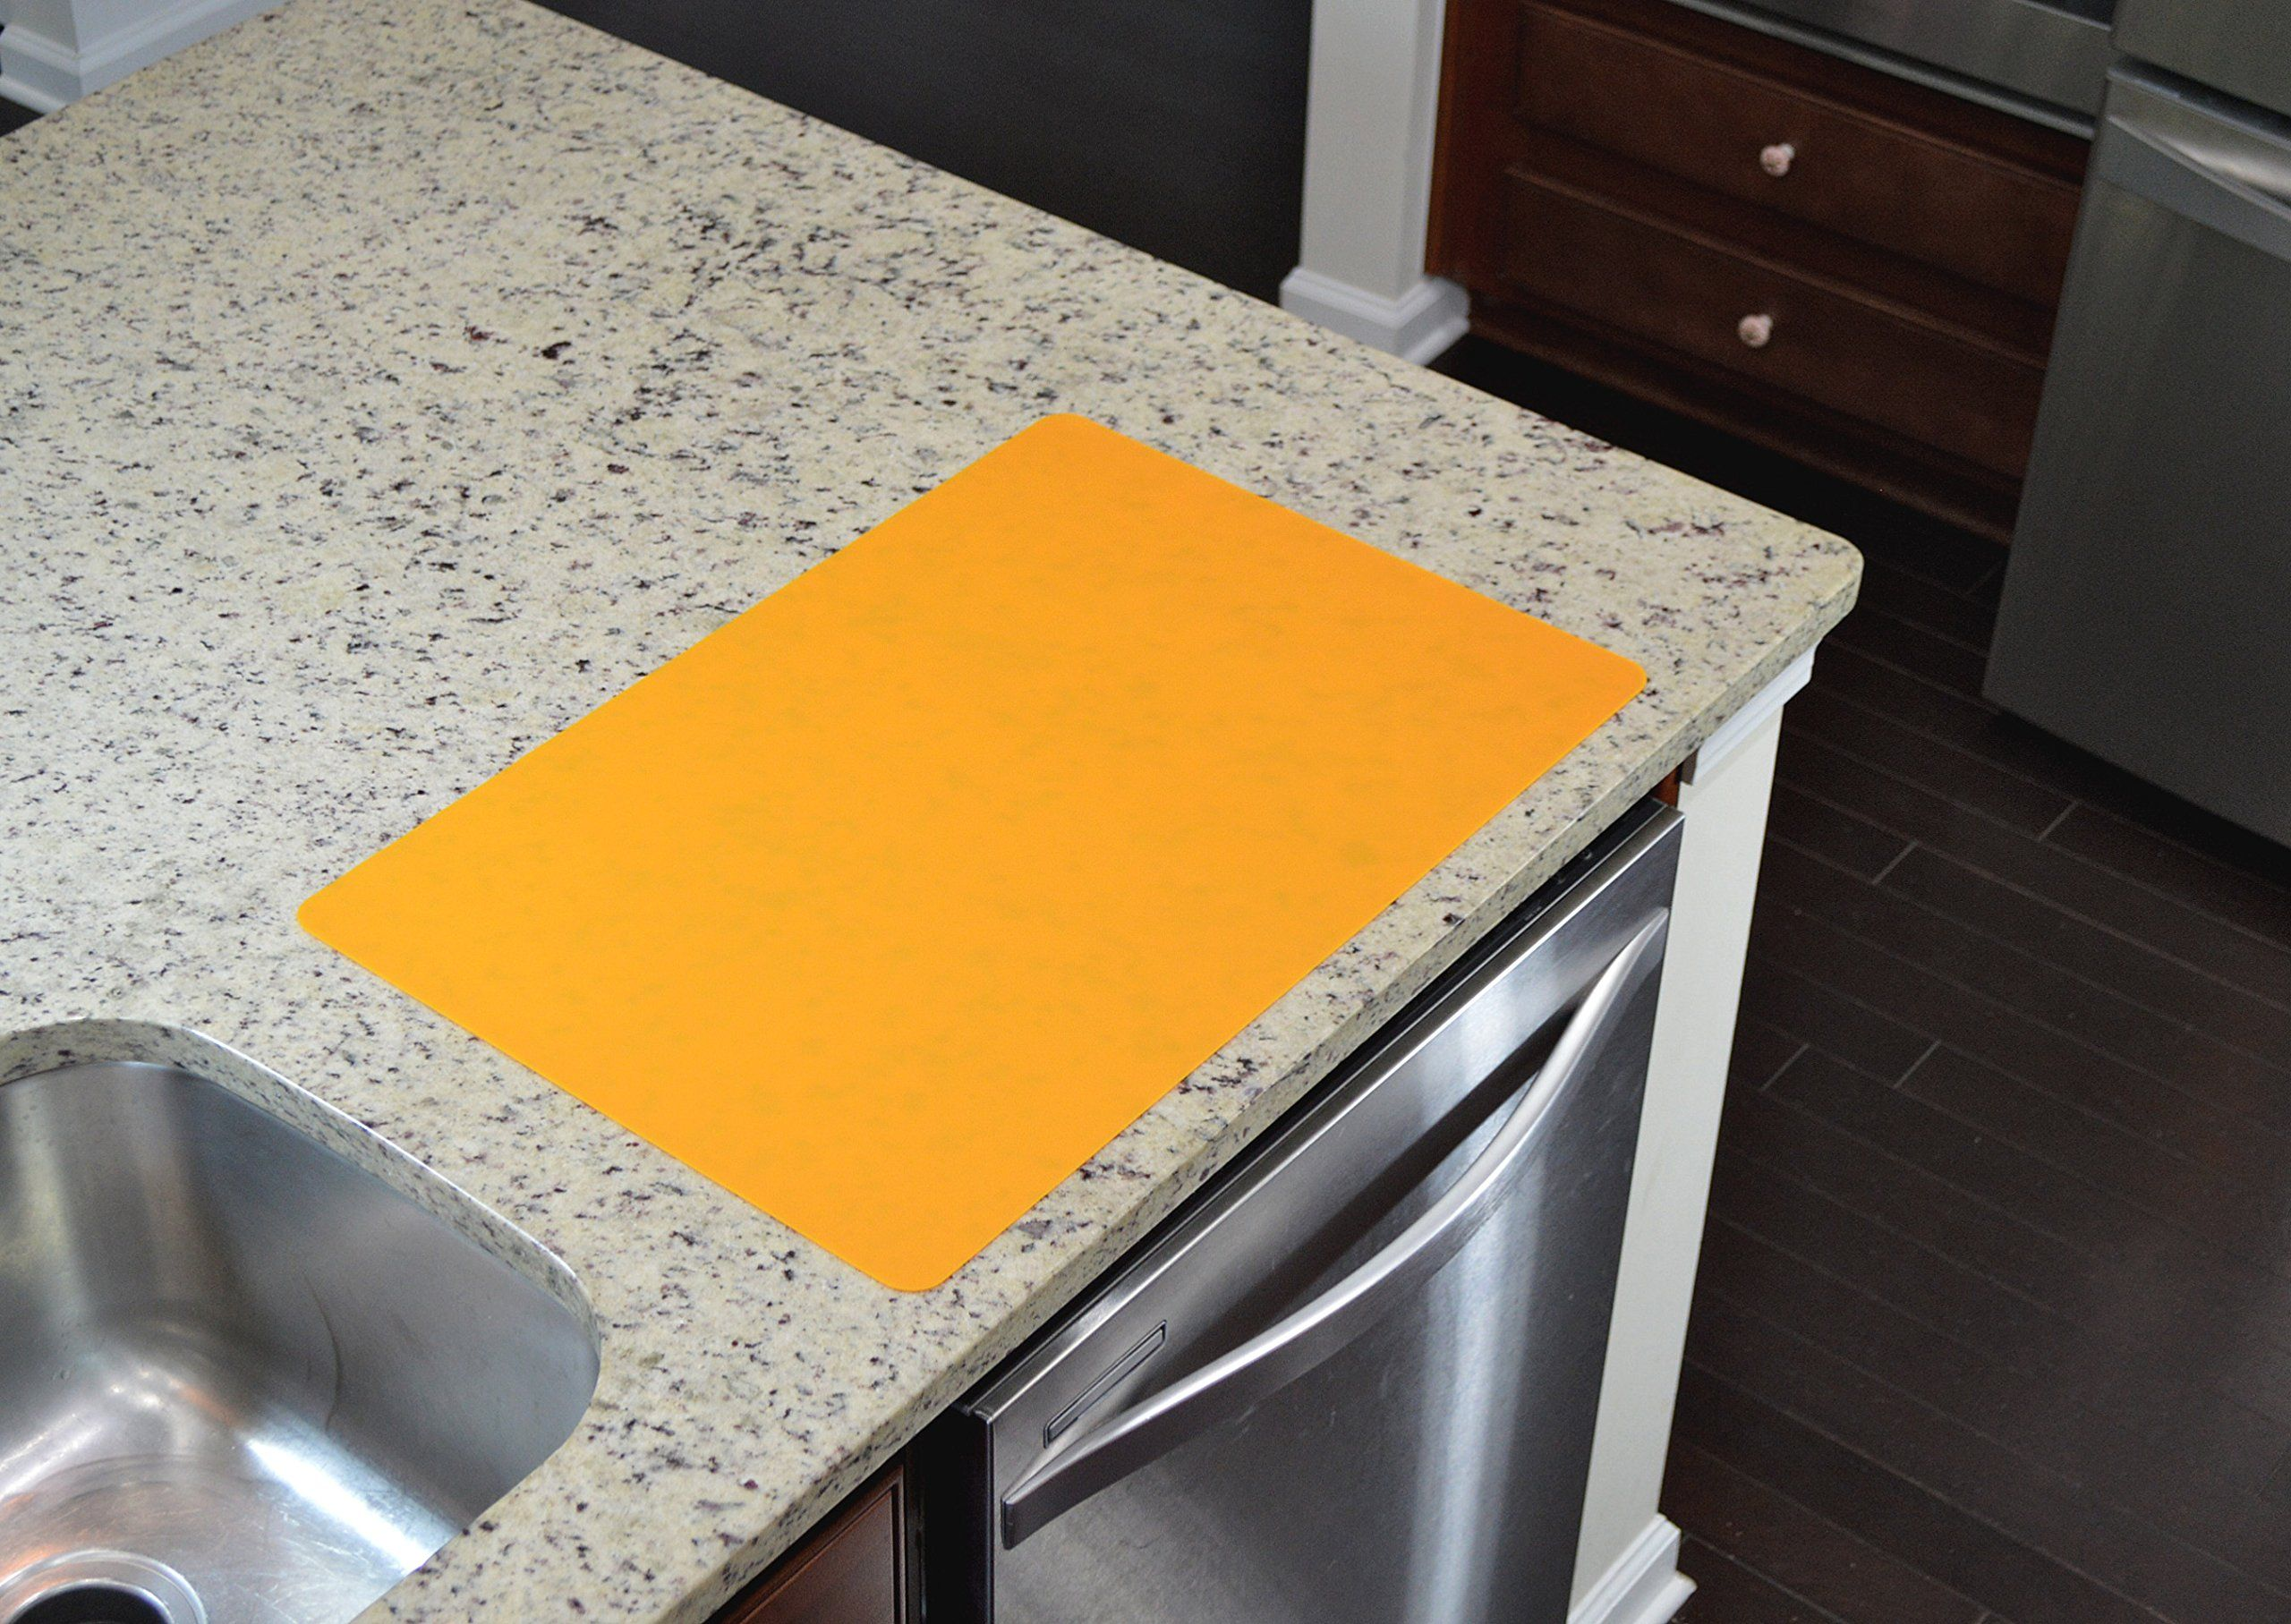 Gasare Extra Large Silicone Mats Countertop Protection Heat Resistant Non Slip Very Thick Nonstick Pastry Mats S Heat Resistant Countertops Kitchen Countertops